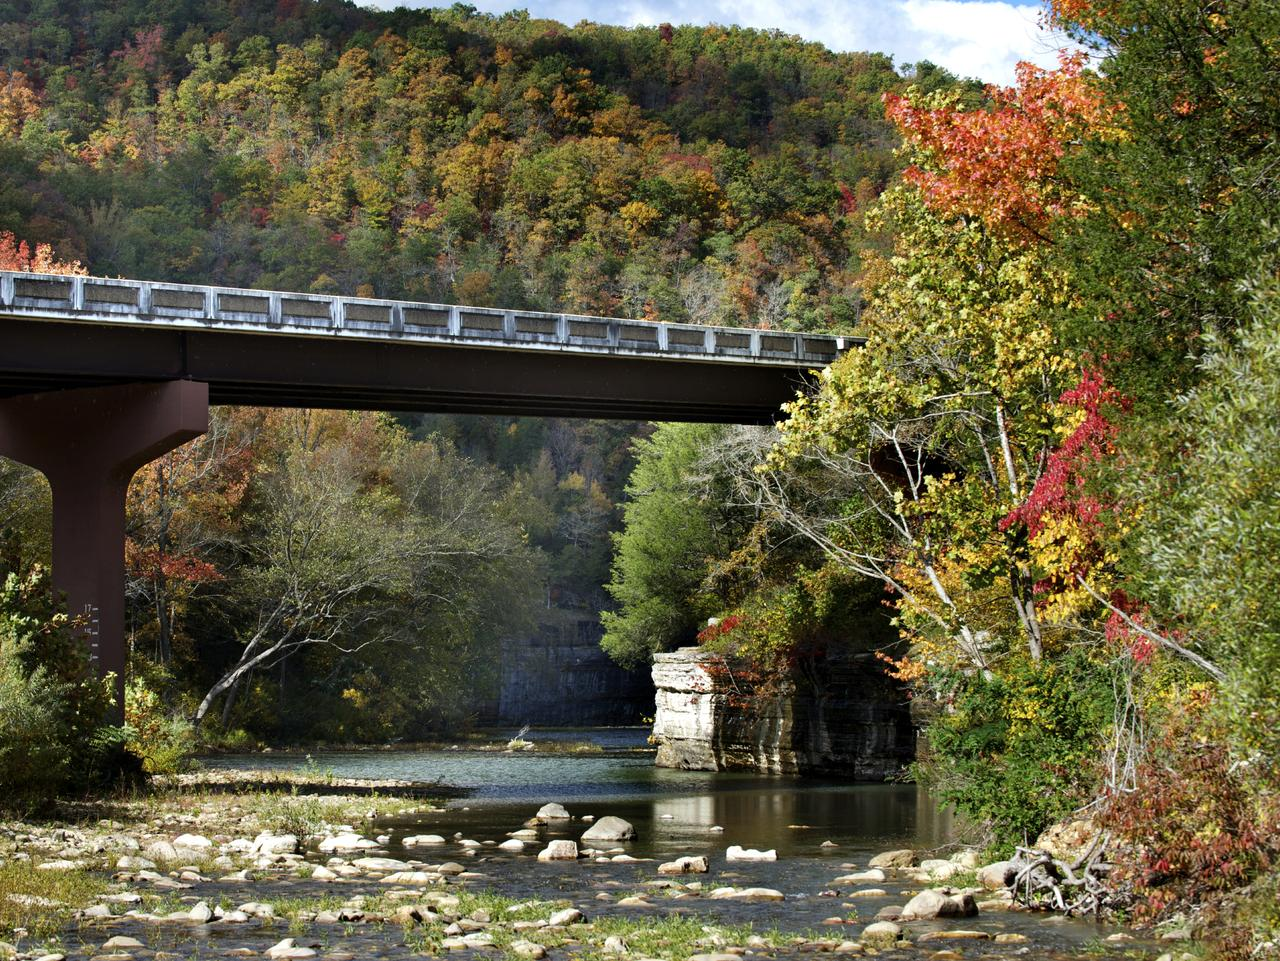 Exploring the Ozark Mountains by train is a stunning adventure, especially in autumn.